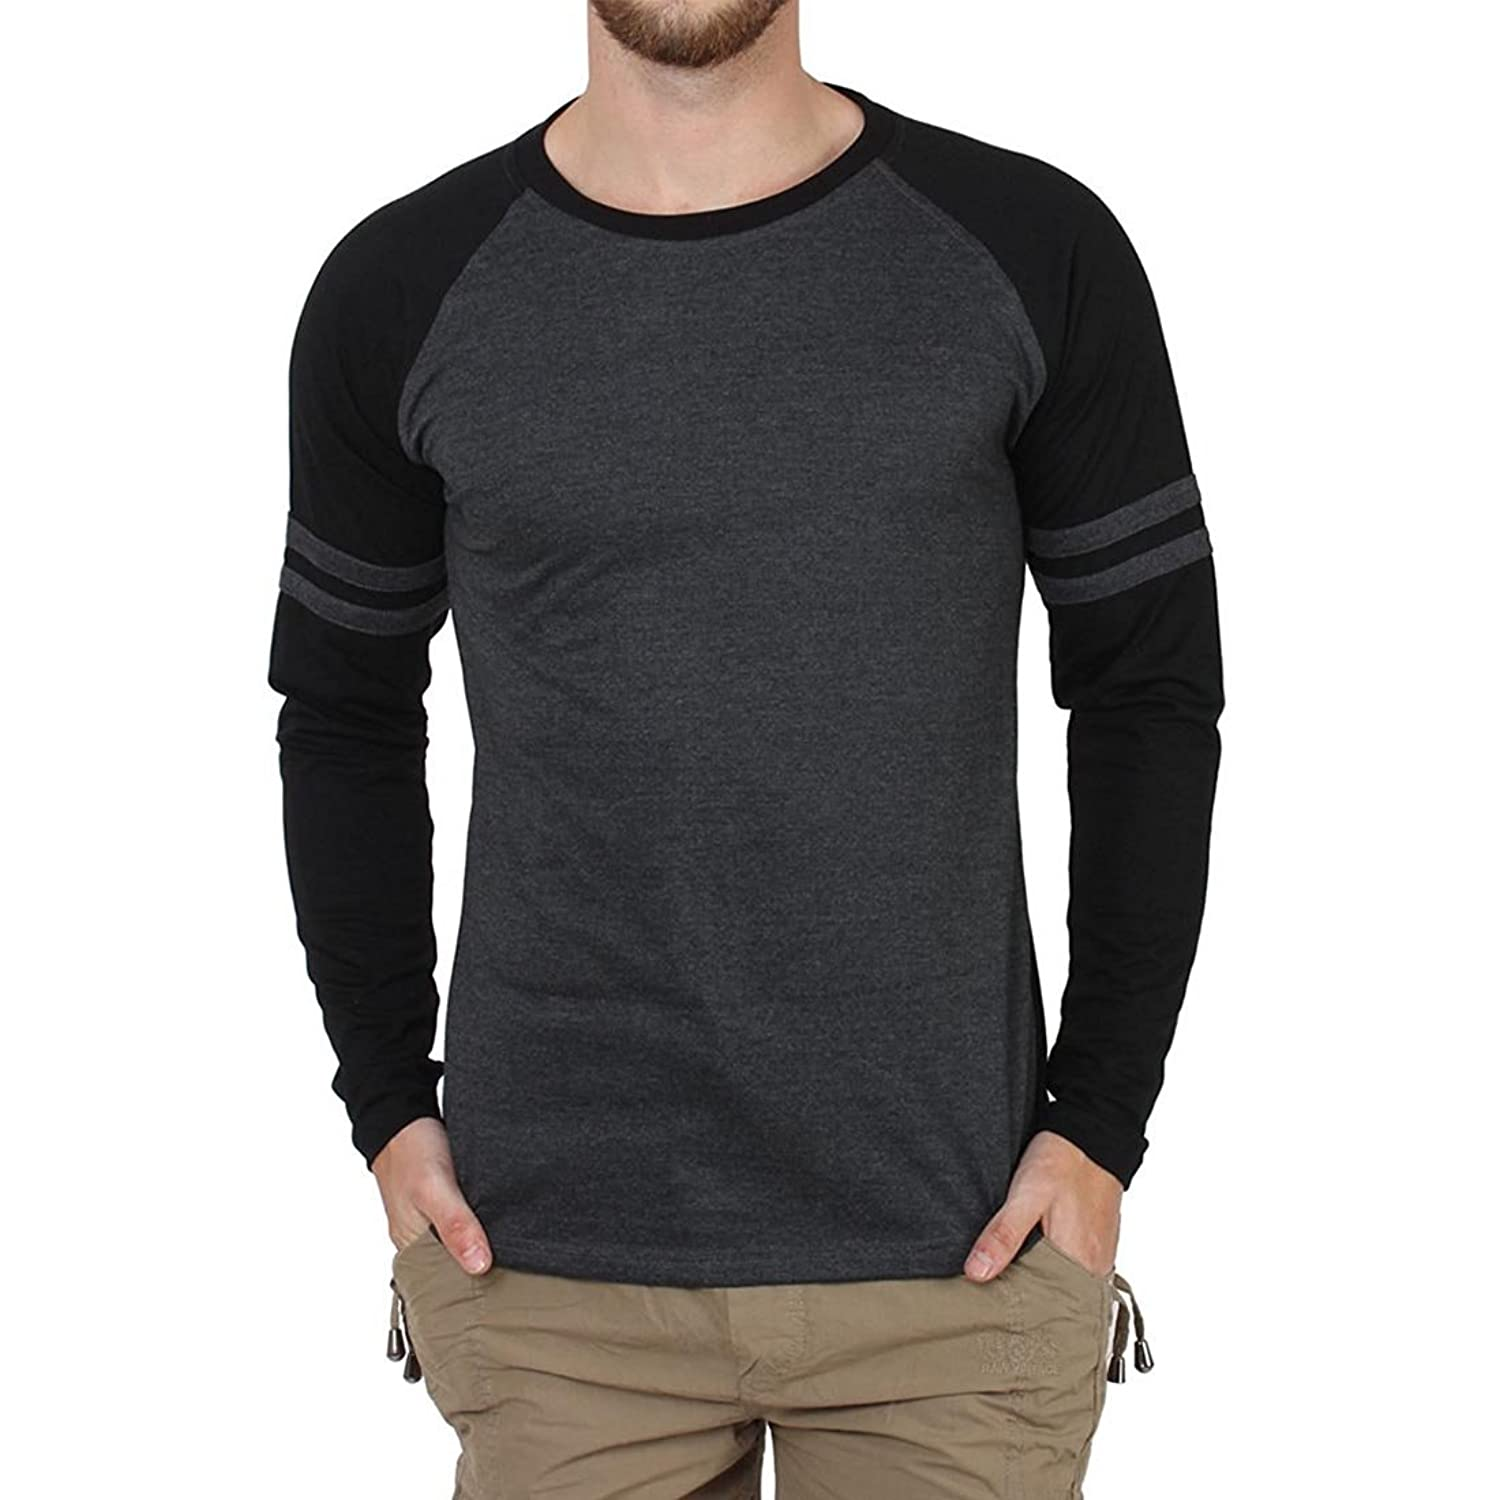 Branded t shirts for men artee shirt for Brand name long sleeve t shirt